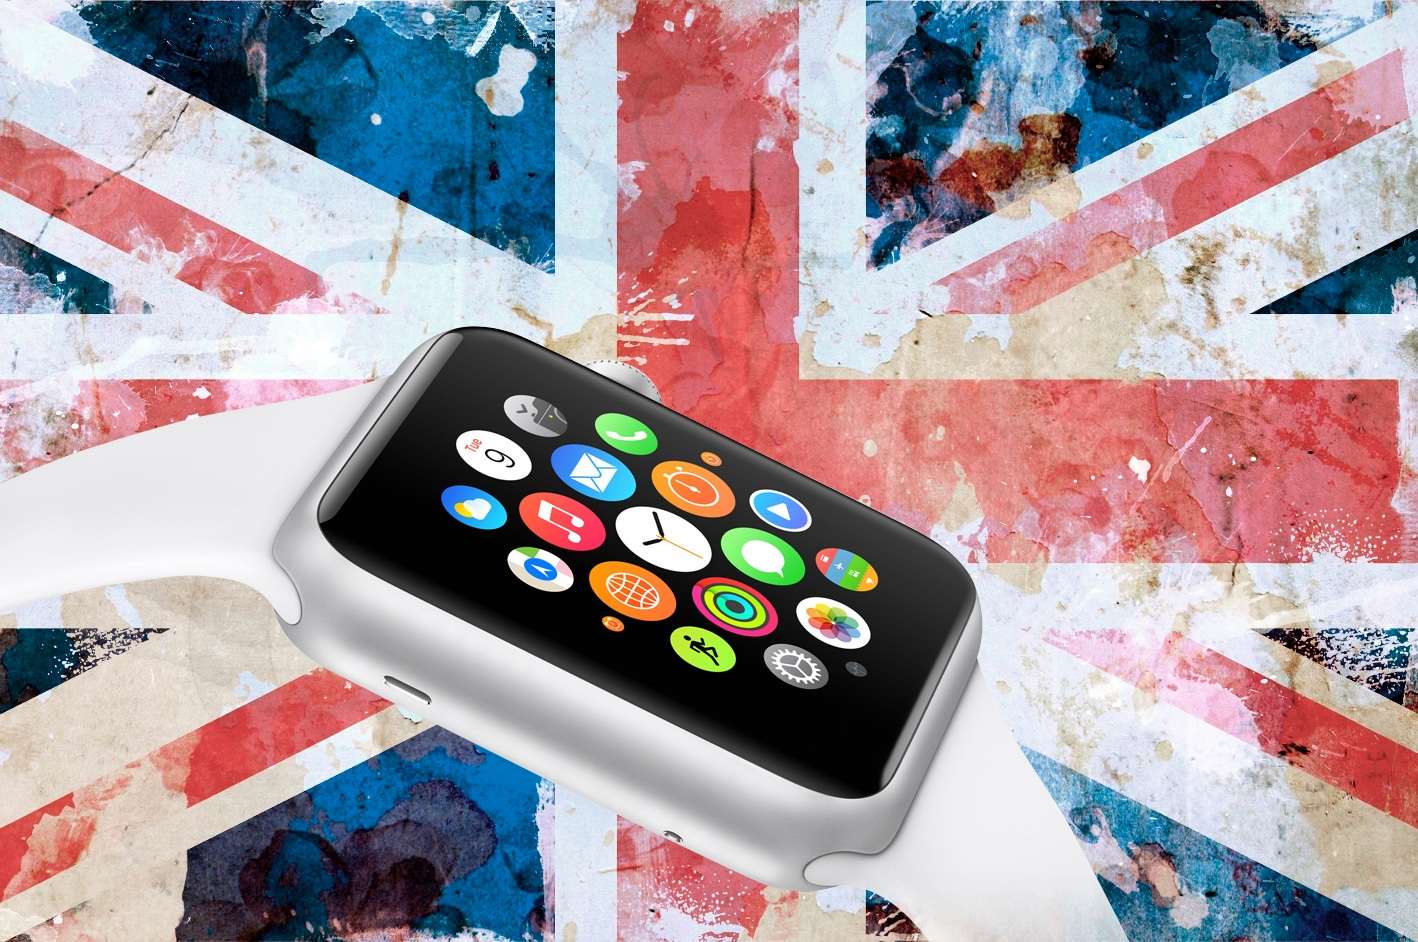 Brits too cool for wearable tech